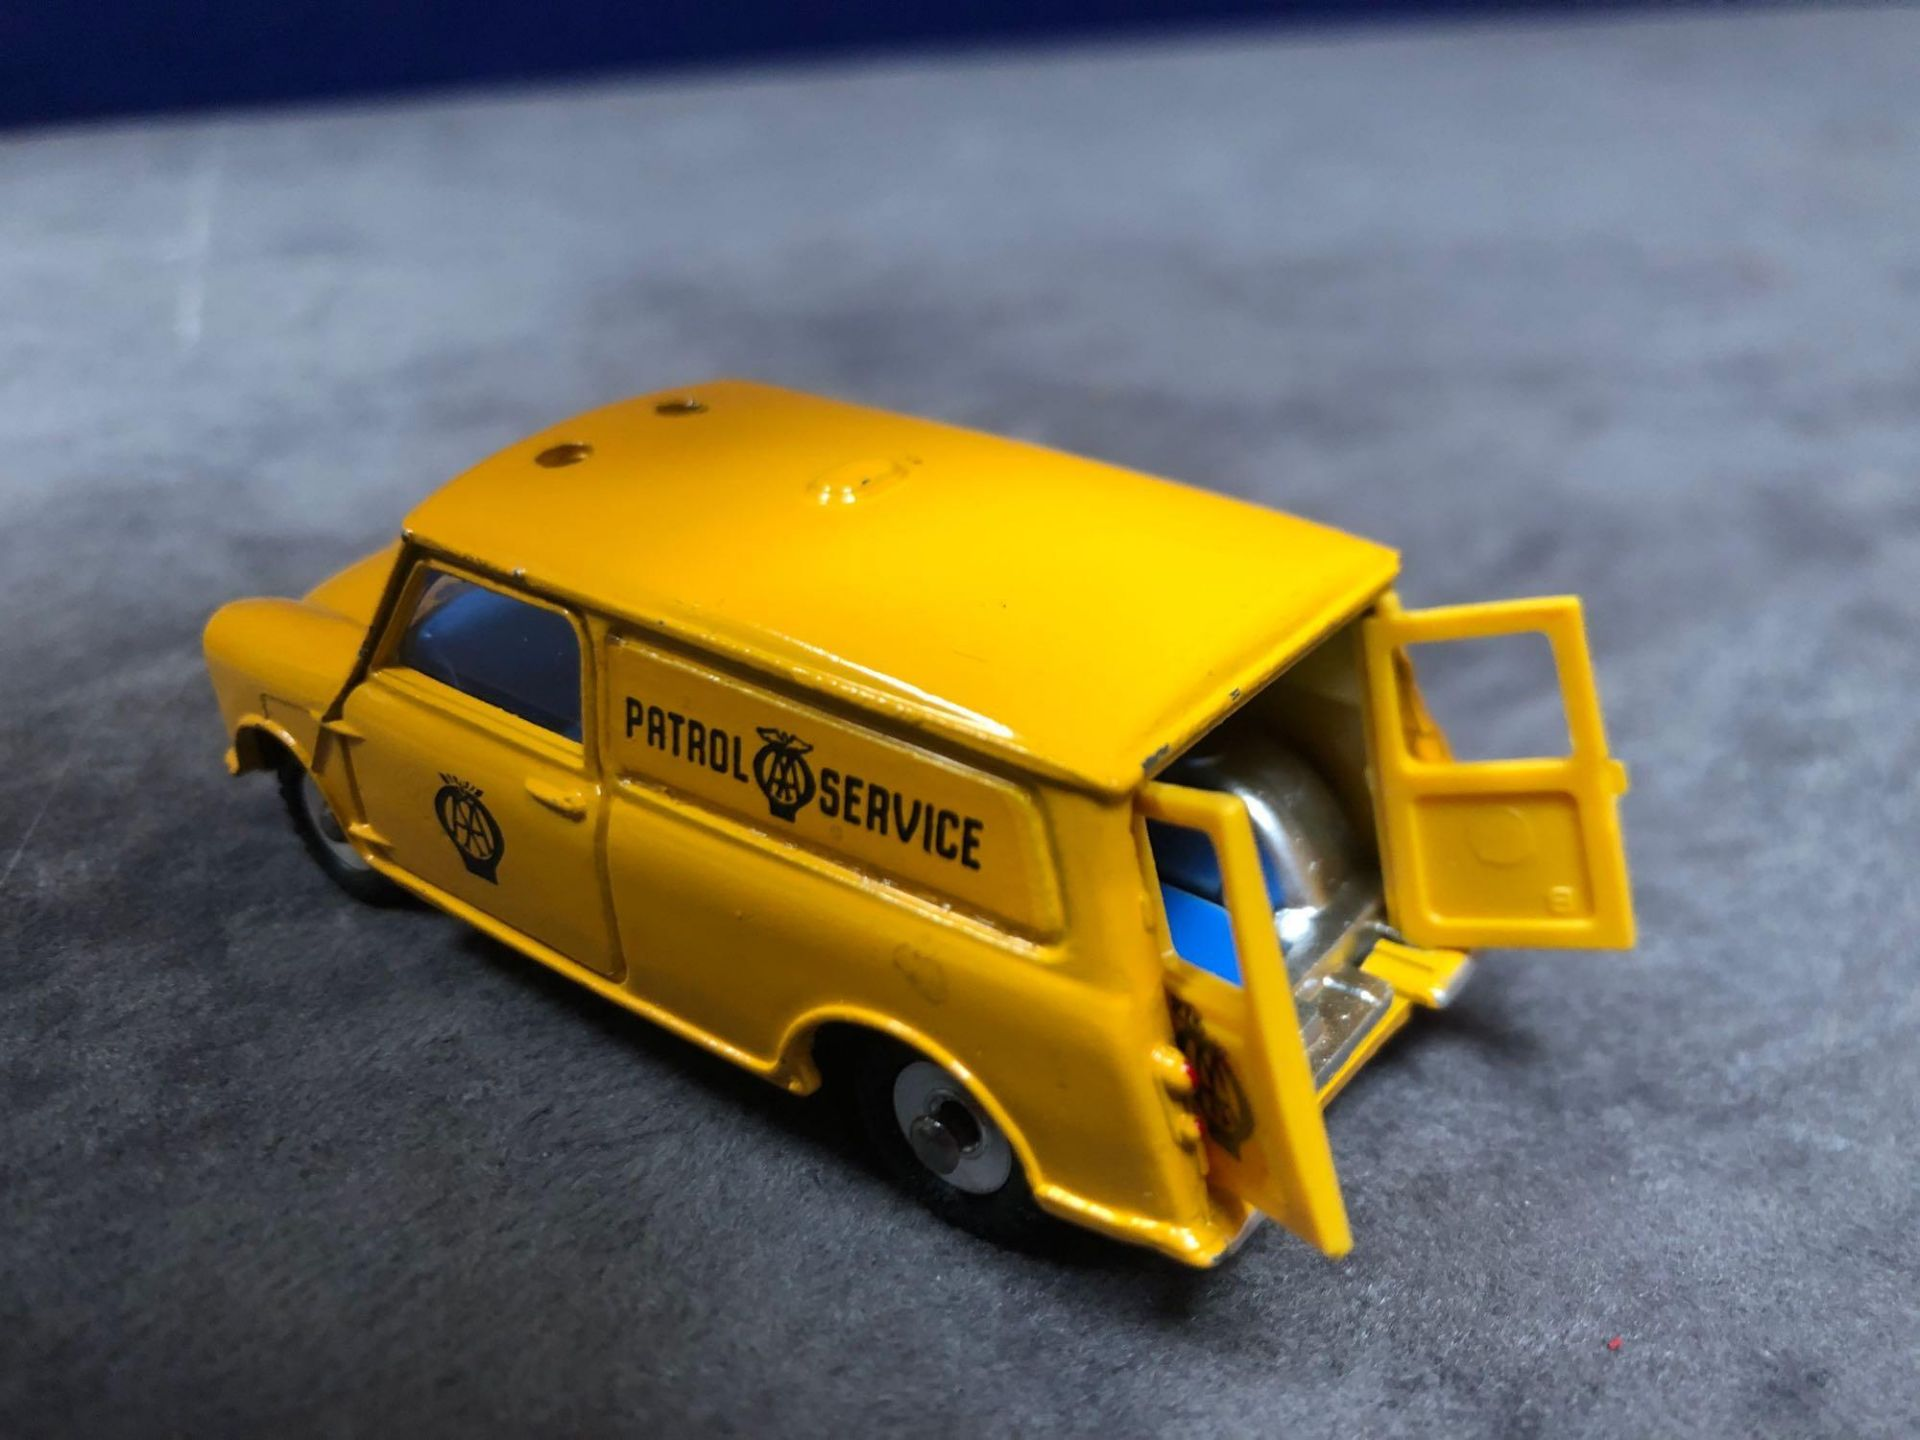 Dinky #274 AA Patrol Mini Van Yellow (AA Service) - Yellow Body And White Roof. AA Service To Van - Image 3 of 4